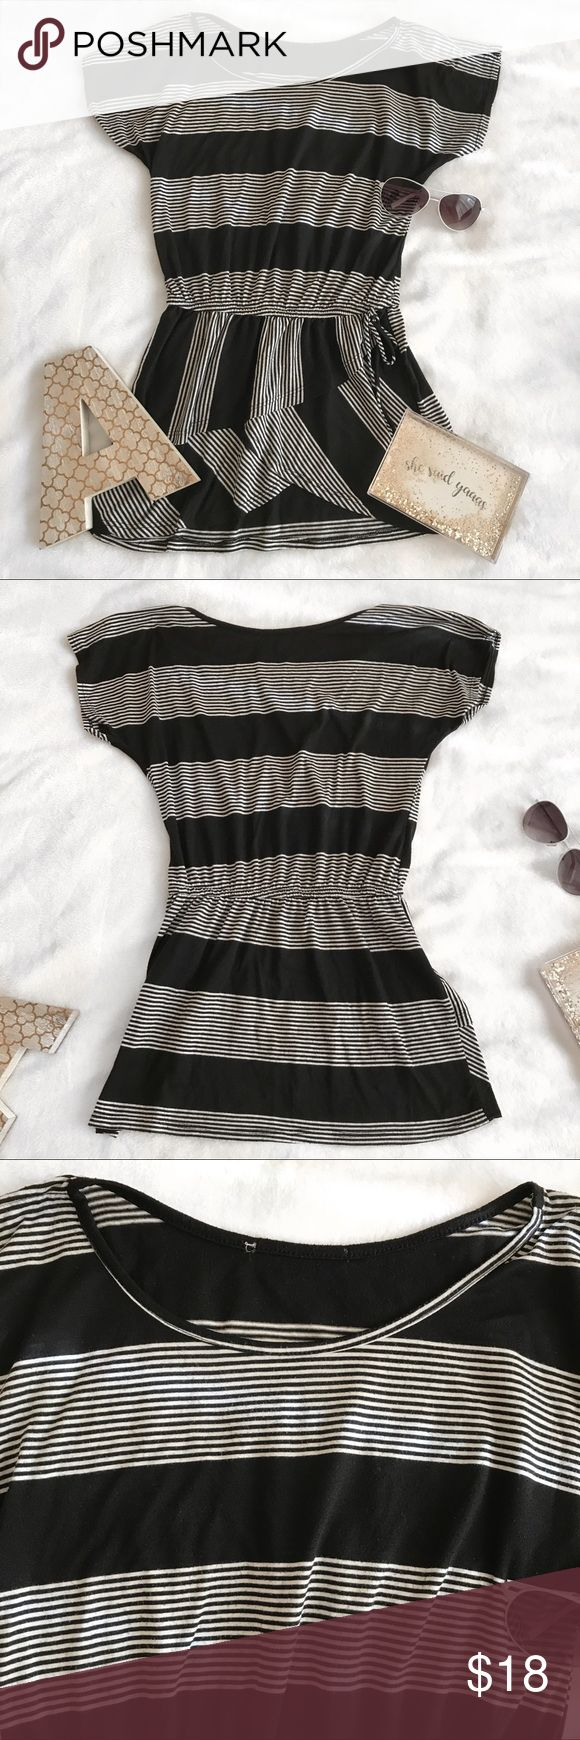 the limited black white striped smocked top 🕶✨ very short and stretchy short sleeve top with a bow detail around the waist. super cute pattern near the bottom half! cut off the brand tag but it was from the limited. high-low hem.  size: women's size small condition: excellent pre-owned condition, slight piling at neckline and bottom hem fit: relaxed but snug around waist flat measurements:     * 18 inches pit to pit     * 26 inches in length, front hem     * 28.5 inches in length, back hem…